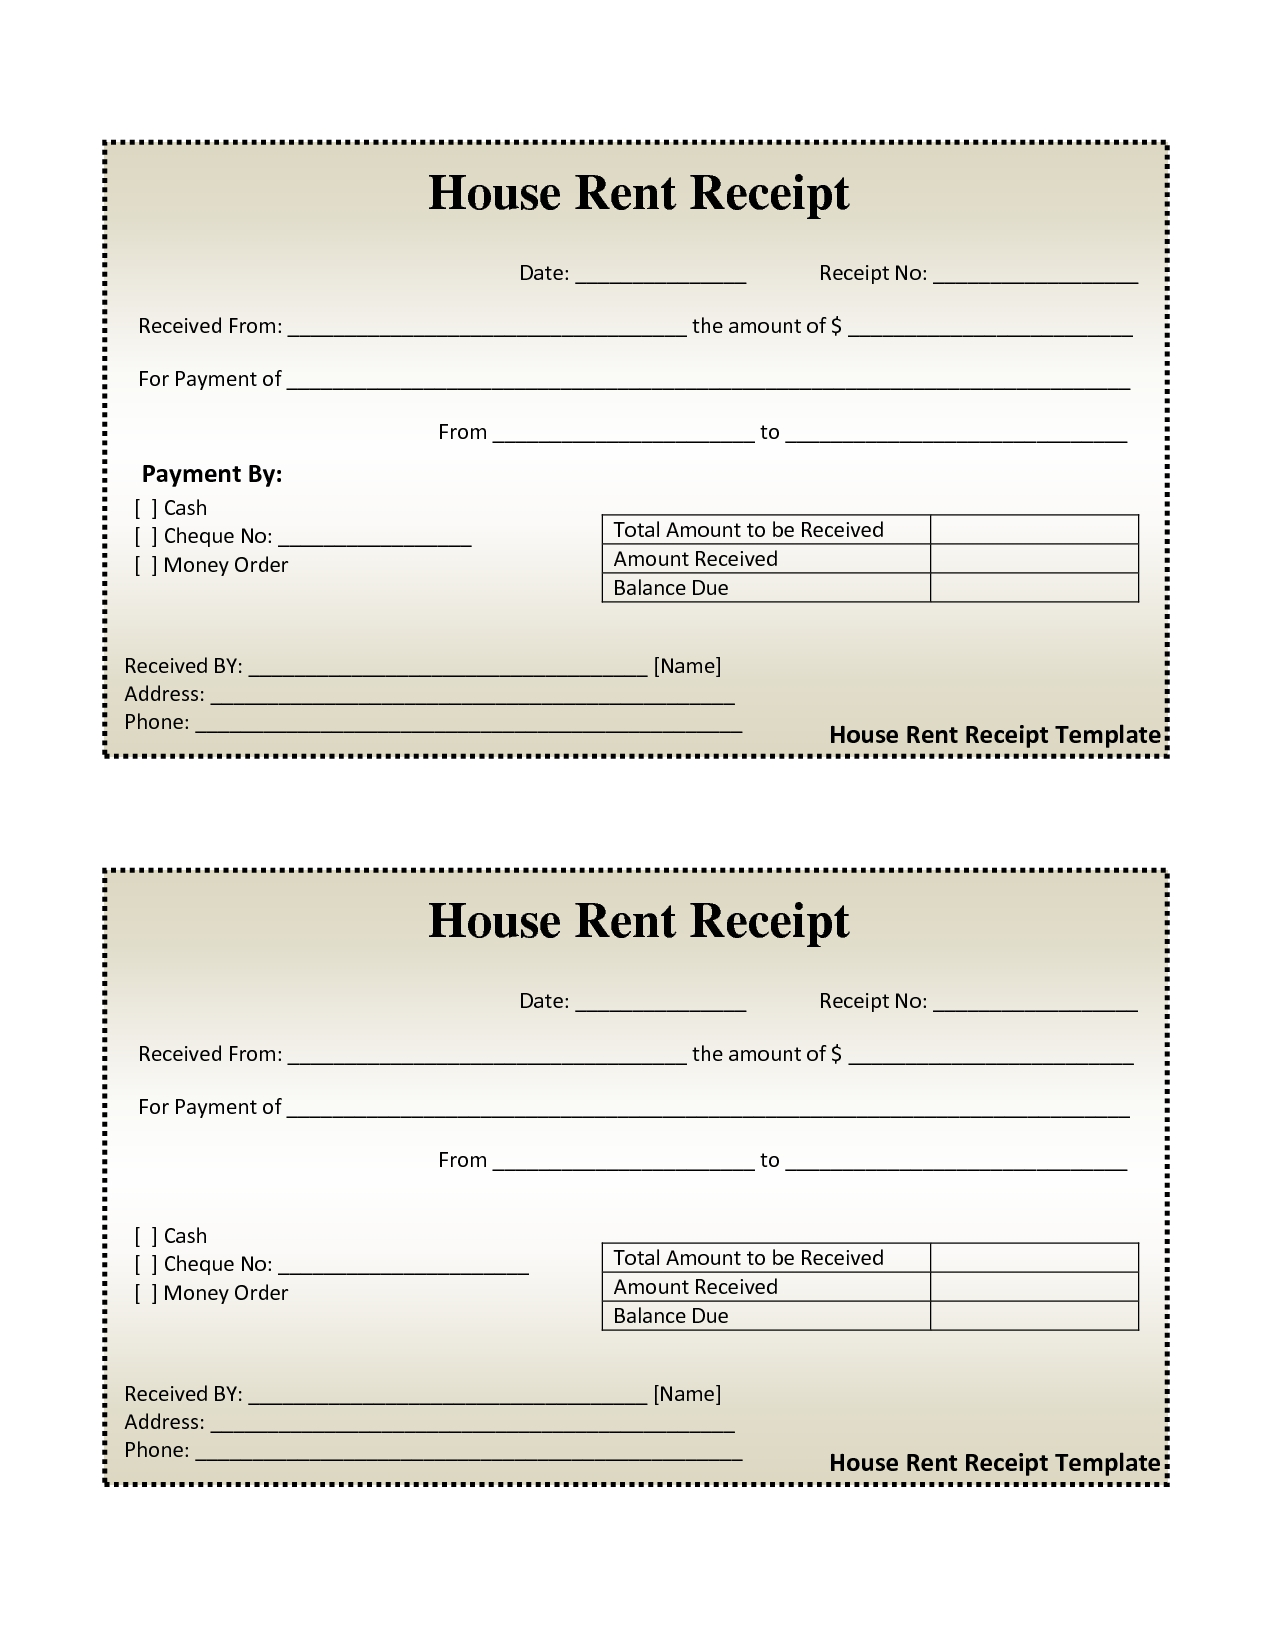 free house rental invoice house rent receipt template rental for taxi invoice